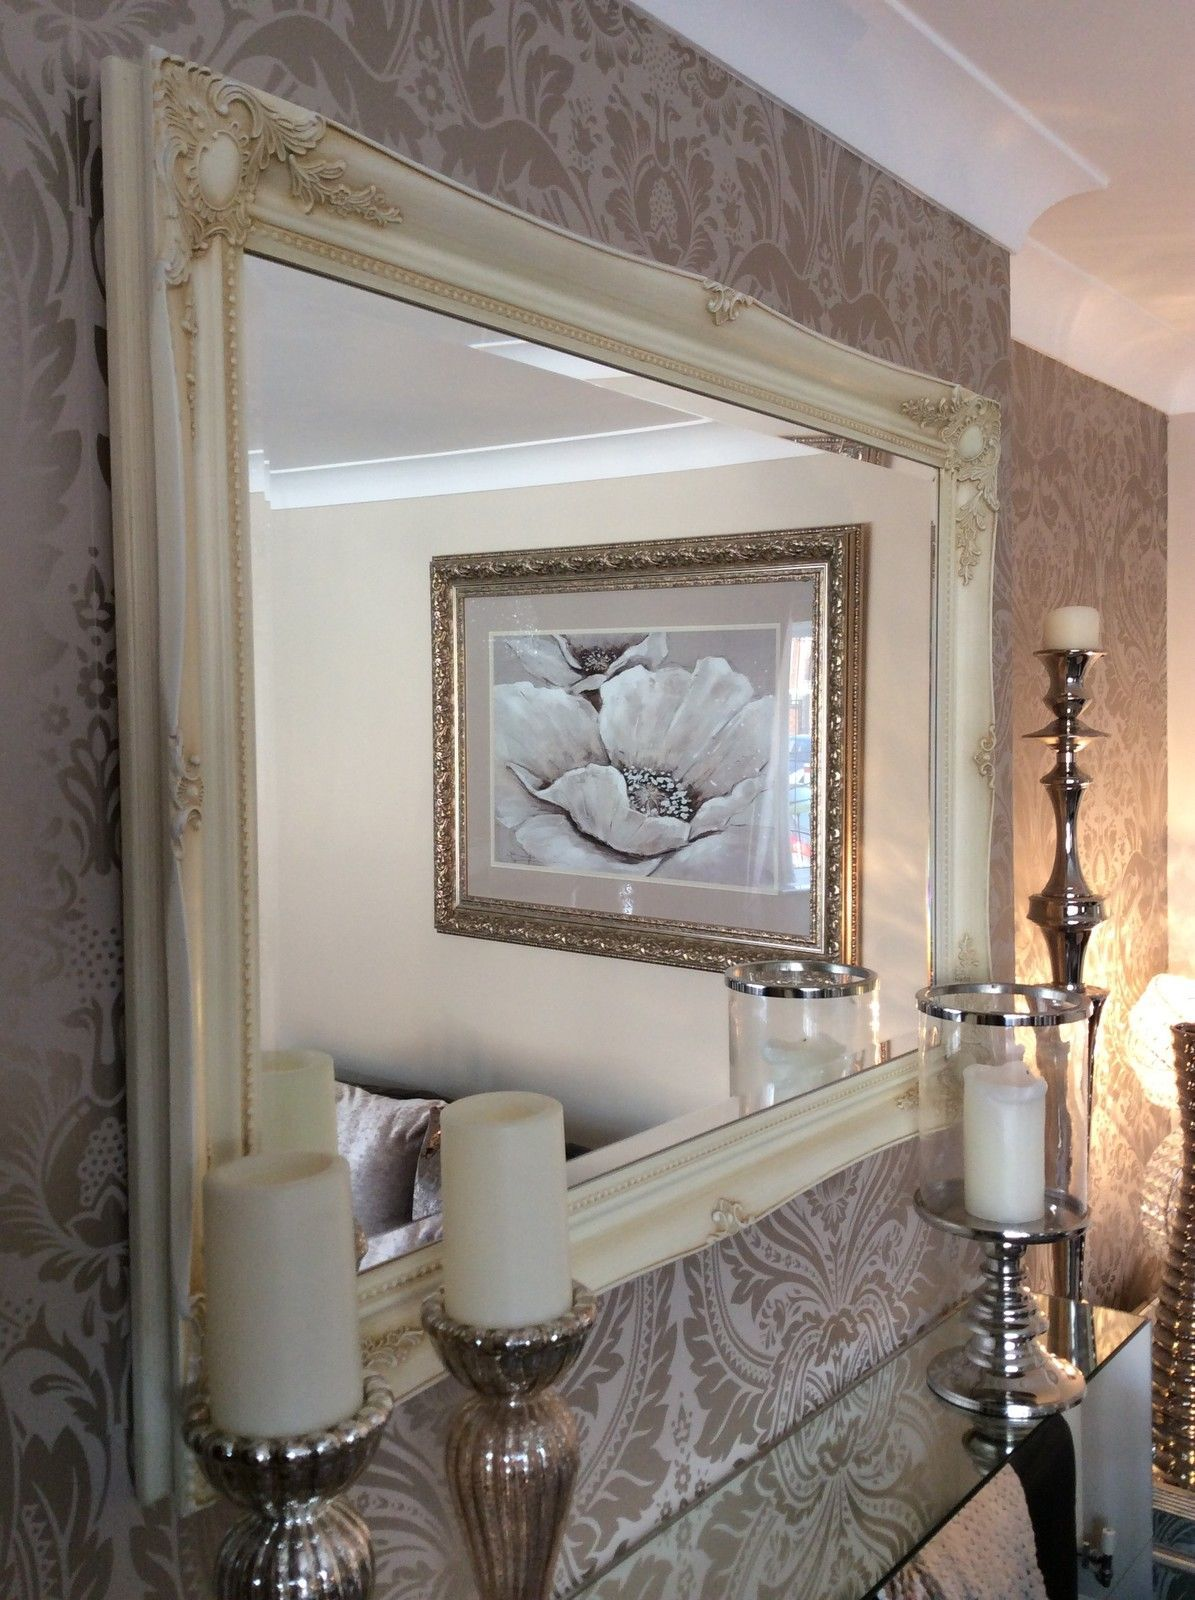 HUGE Cream Shabby Chic Framed Ornate Wall Overmantle Mirror CHOOSE YOUR SIZE